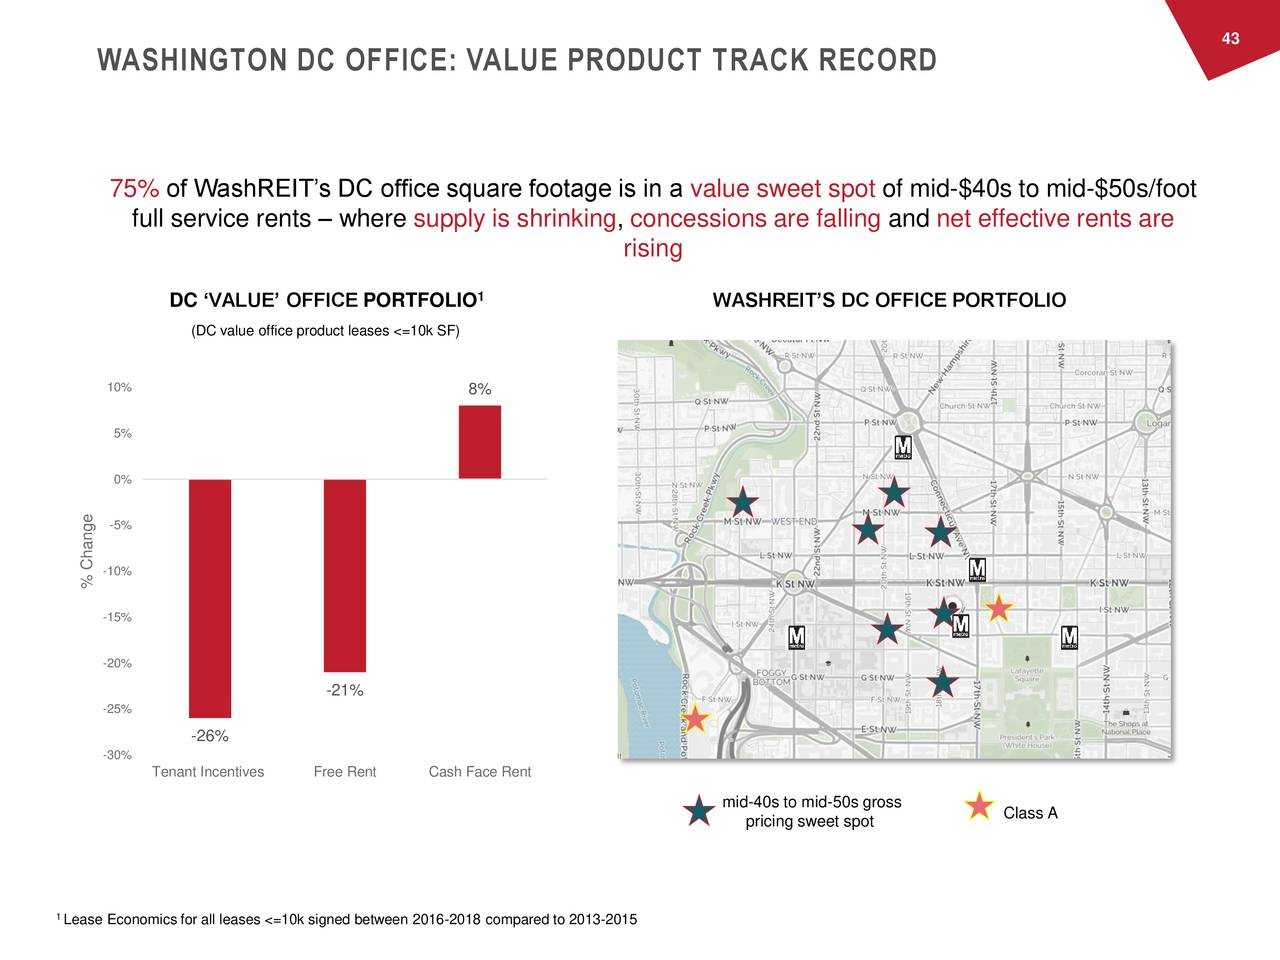 WASHINGTON DC OFFICE: VALUE PRODUCT TRACK RECORD 75% of WashREIT's DC office square footage is in a value sweet spot of mid-$40s to mid-$50s/foot full service rents – where supply is shrinking, concessions are falling and net effective rents are rising DC 'VALUE' OFFICE PORTFOLIO 1 WASHREIT'S DC OFFICE PORTFOLIO (DC value office product leases <=10k SF) 10% 8% 5% 0% -5% -10% % Change -15% -20% -21% -25% -26% -30% Tenant Incentives Free Rent Cash Face Rent mid-40s to mid-50s gross pricing sweet spot Class A 1 Lease Economics for all leases <=10k signed between 2016-2018 compared to 2013-2015